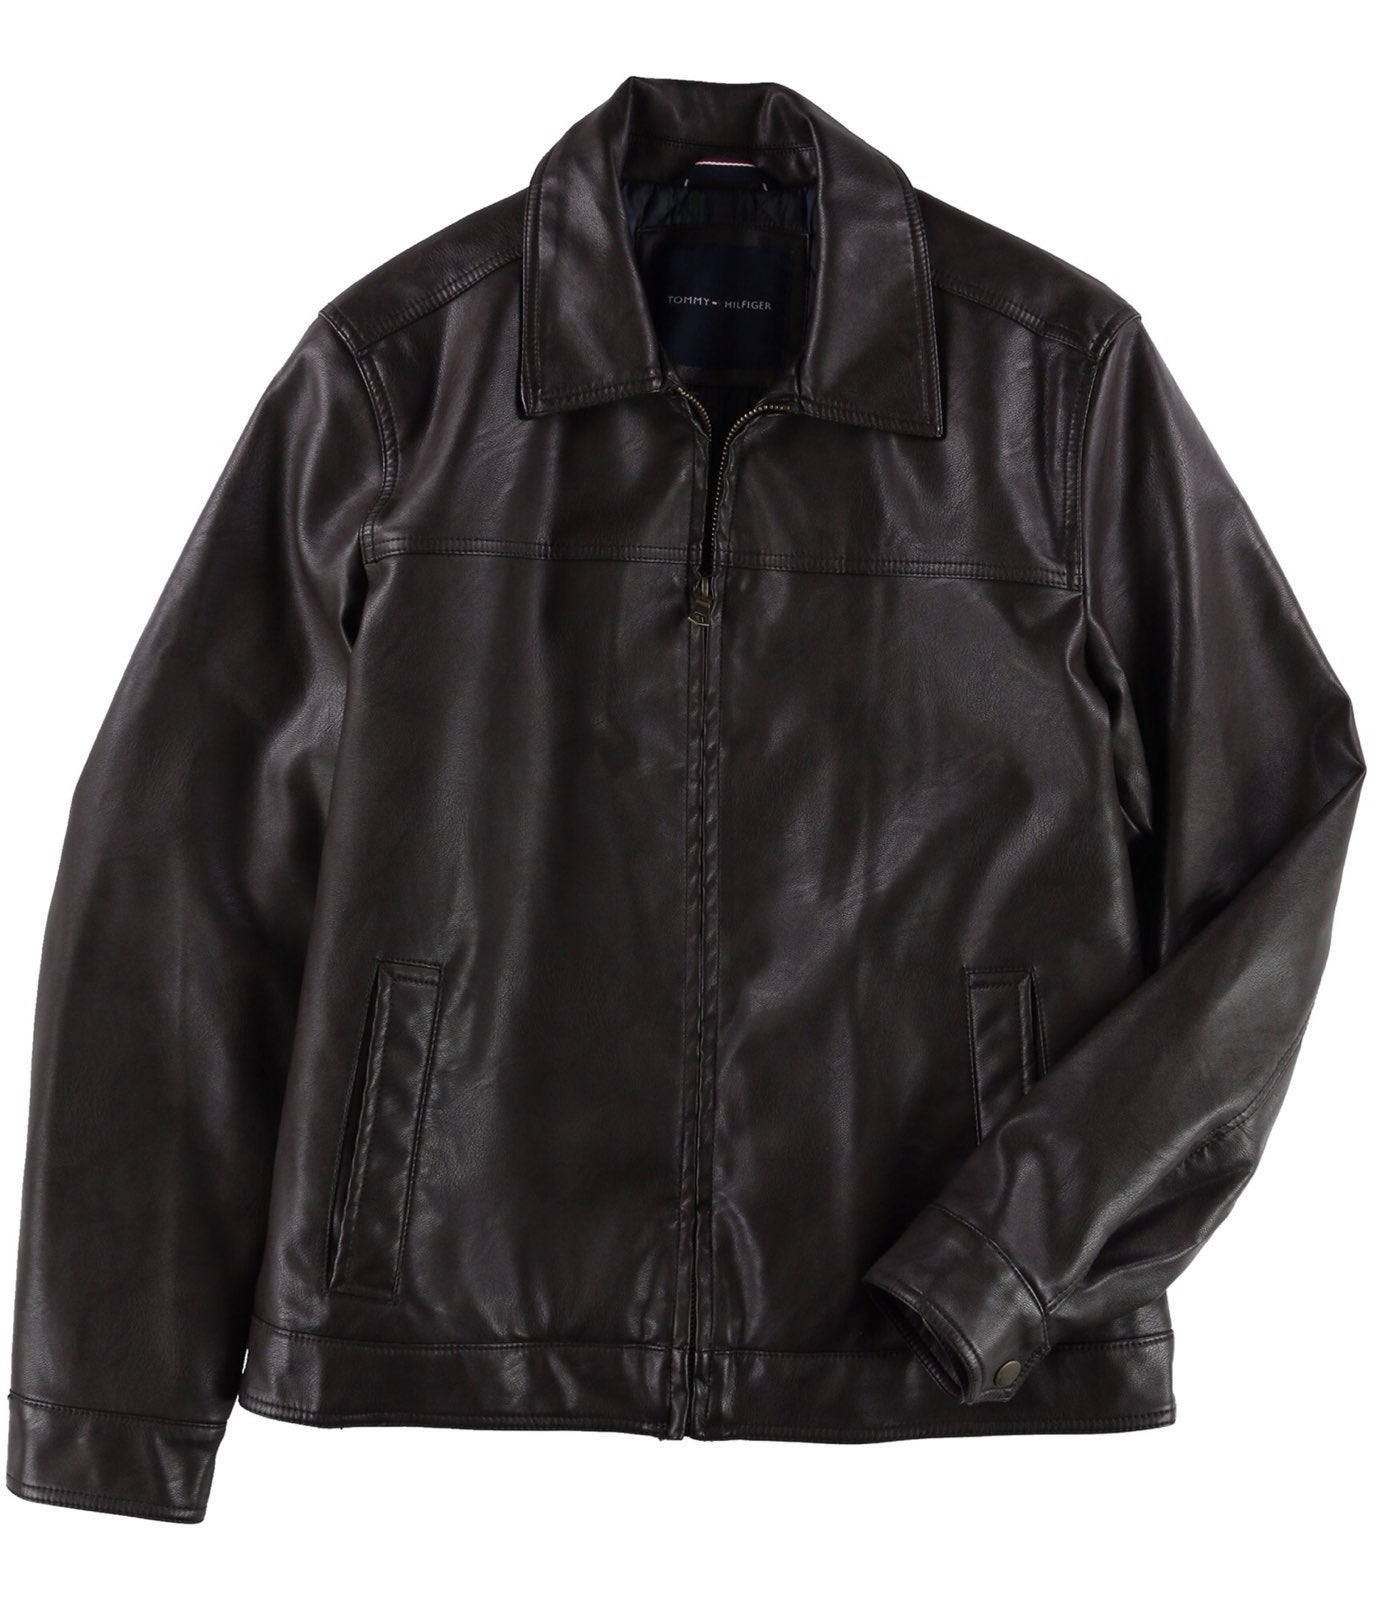 Tommy Hilfiger Collar Motorcycle Jacket